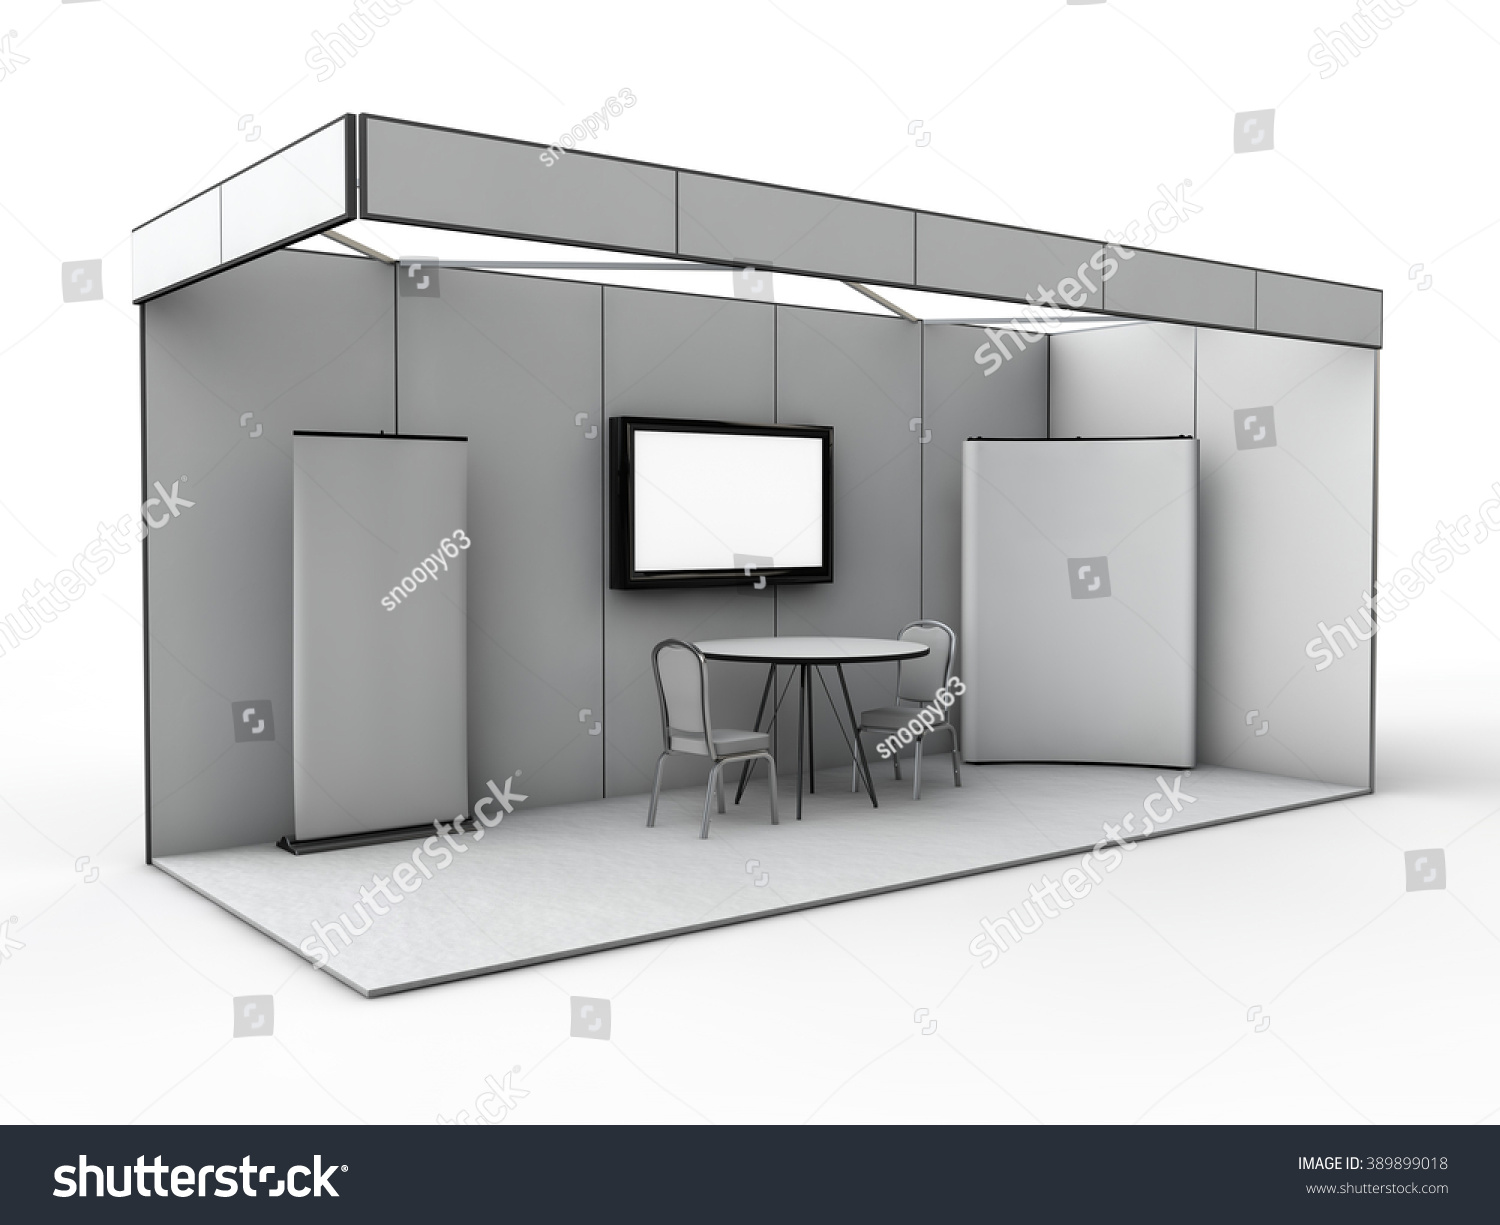 Free Pop Up Exhibition Stand Mockup : Exhibition stand mock d render stock illustration